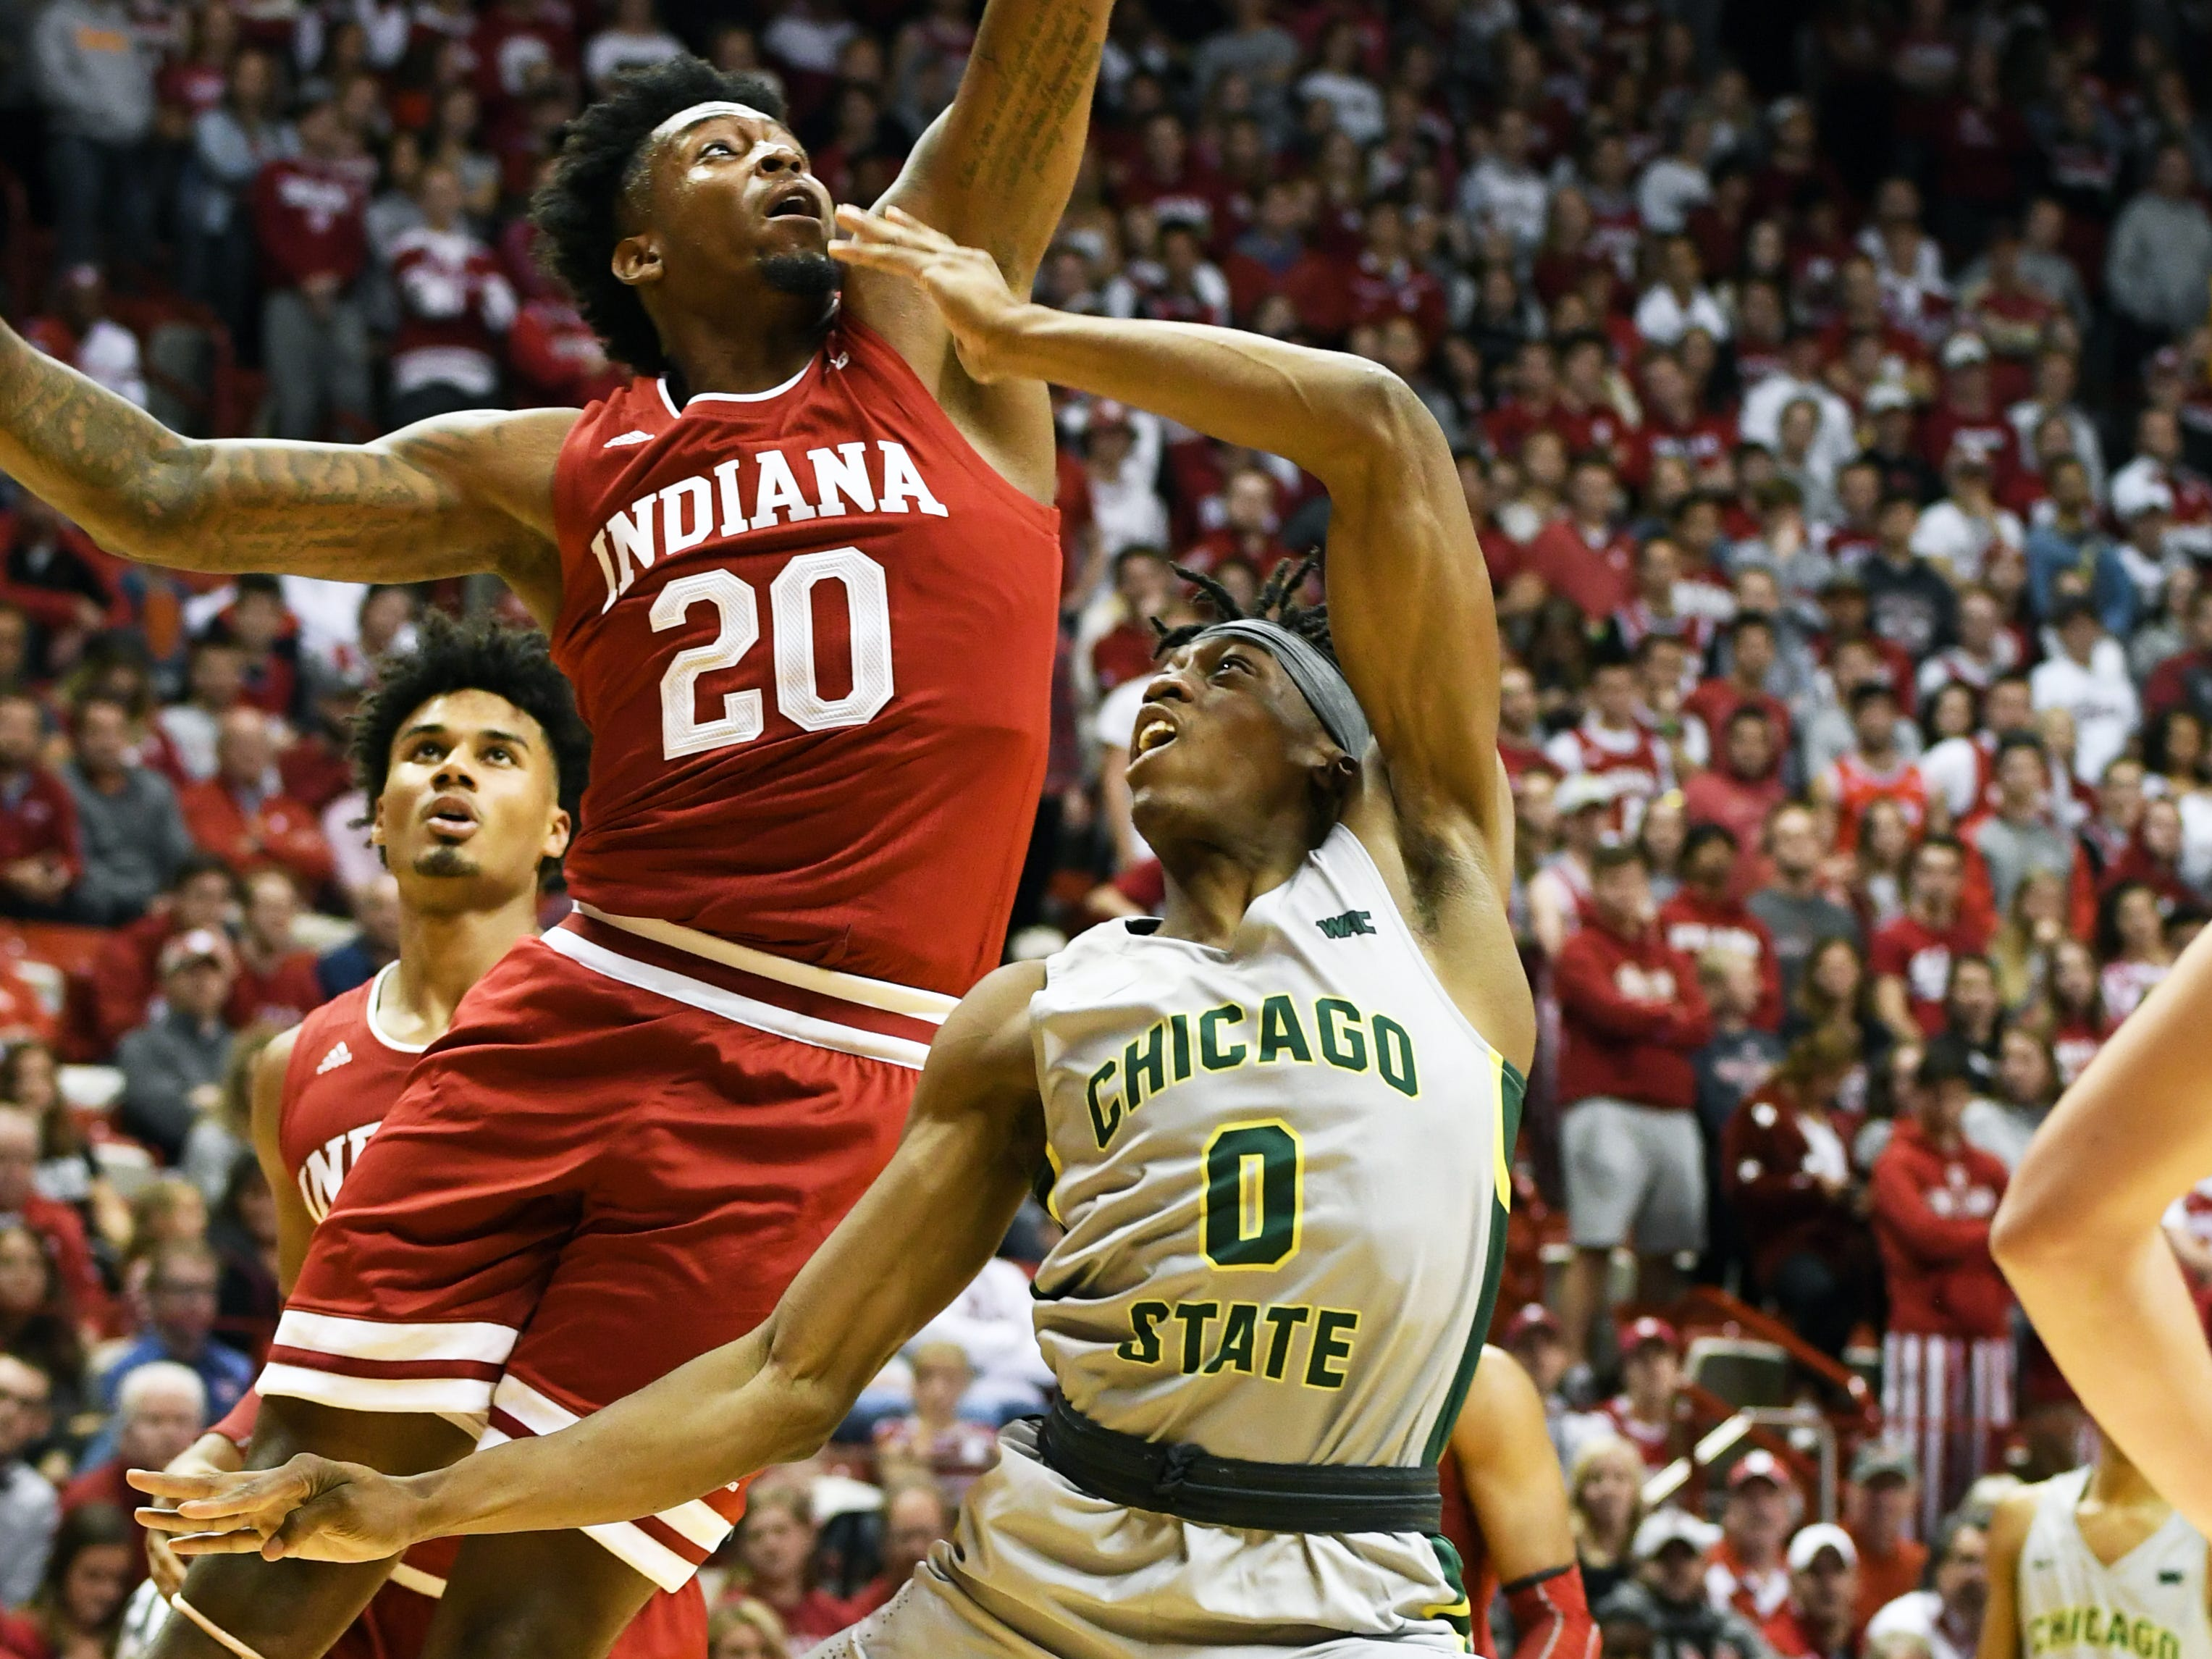 Indiana Hoosiers forward De'Ron Davis (20) blocks a shot from Chicago State forward Ken Odiase (0) during the game against Chicago State at Simon Skjodt Assembly Hall in Bloomington, Ind., on Tuesday, Nov. 6, 2018.